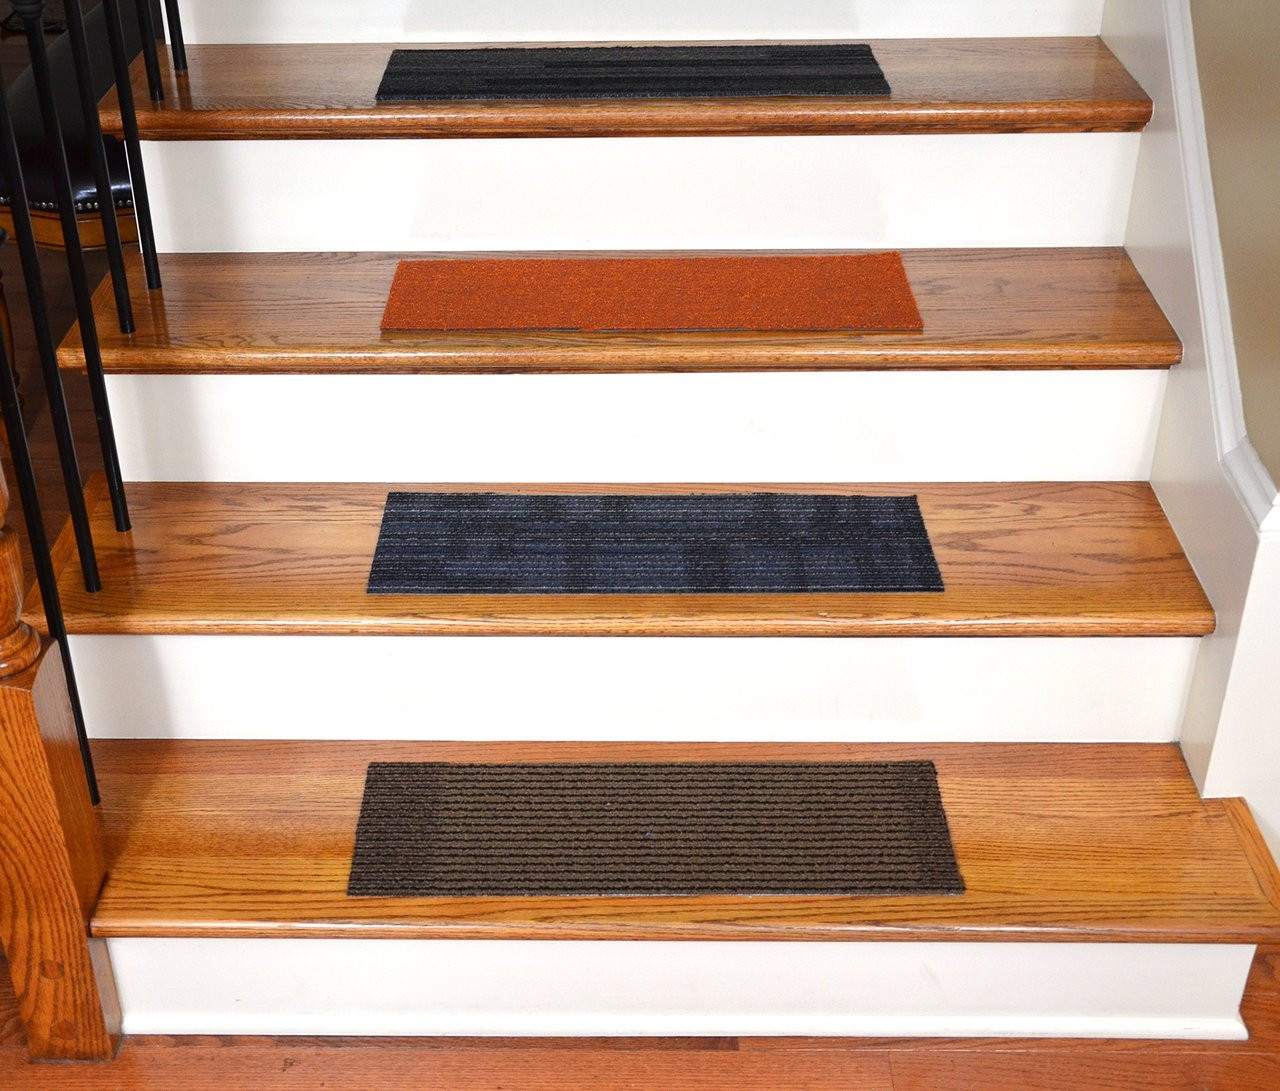 Dean Diy Mosaic Peel And Stick Carpet Stair Treads Set Of 13 | Stick On Stair Treads | Step | Unique | Maple Stair | Integrated Post | Solid Weathered